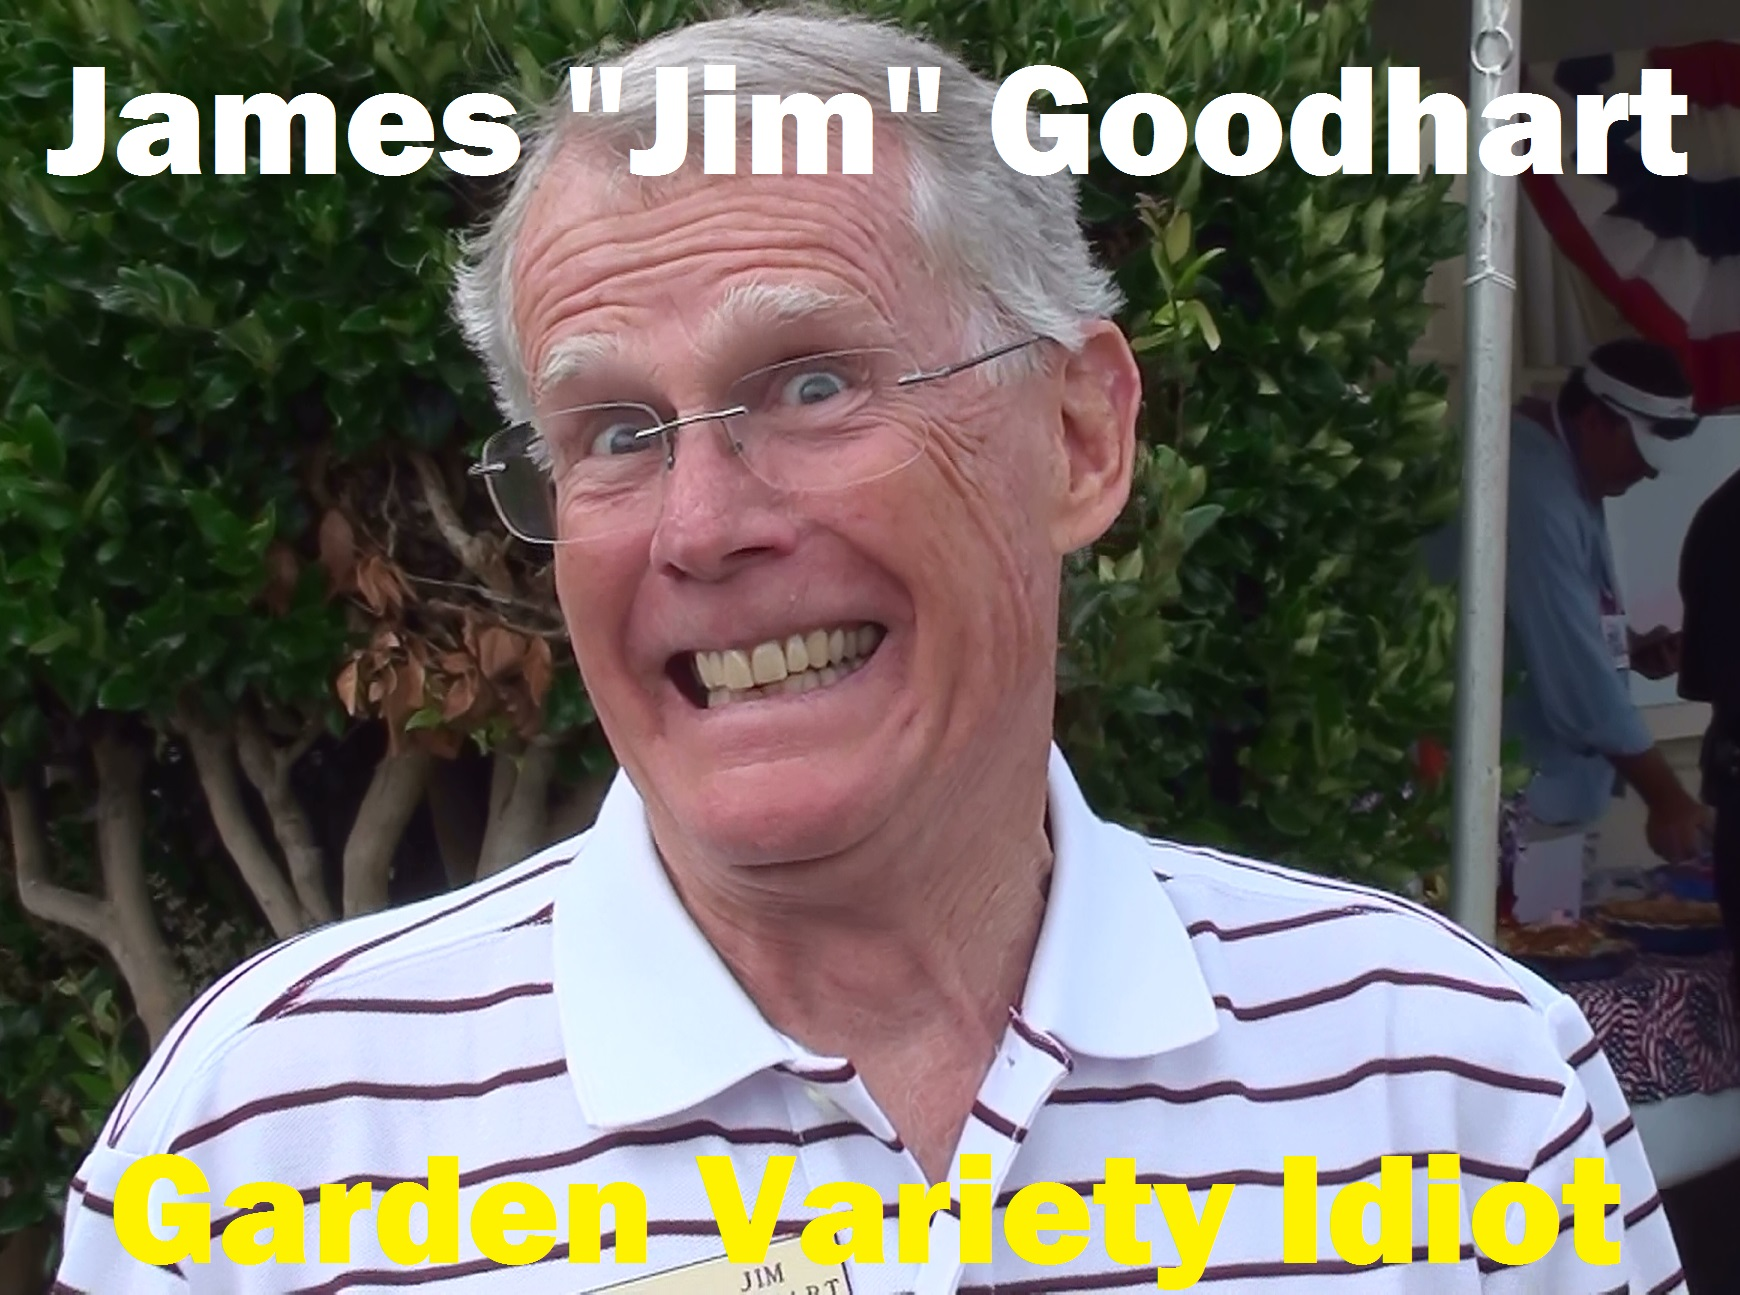 Jim Goodhart - dangerous combination of idiocy and bad dental hygiene